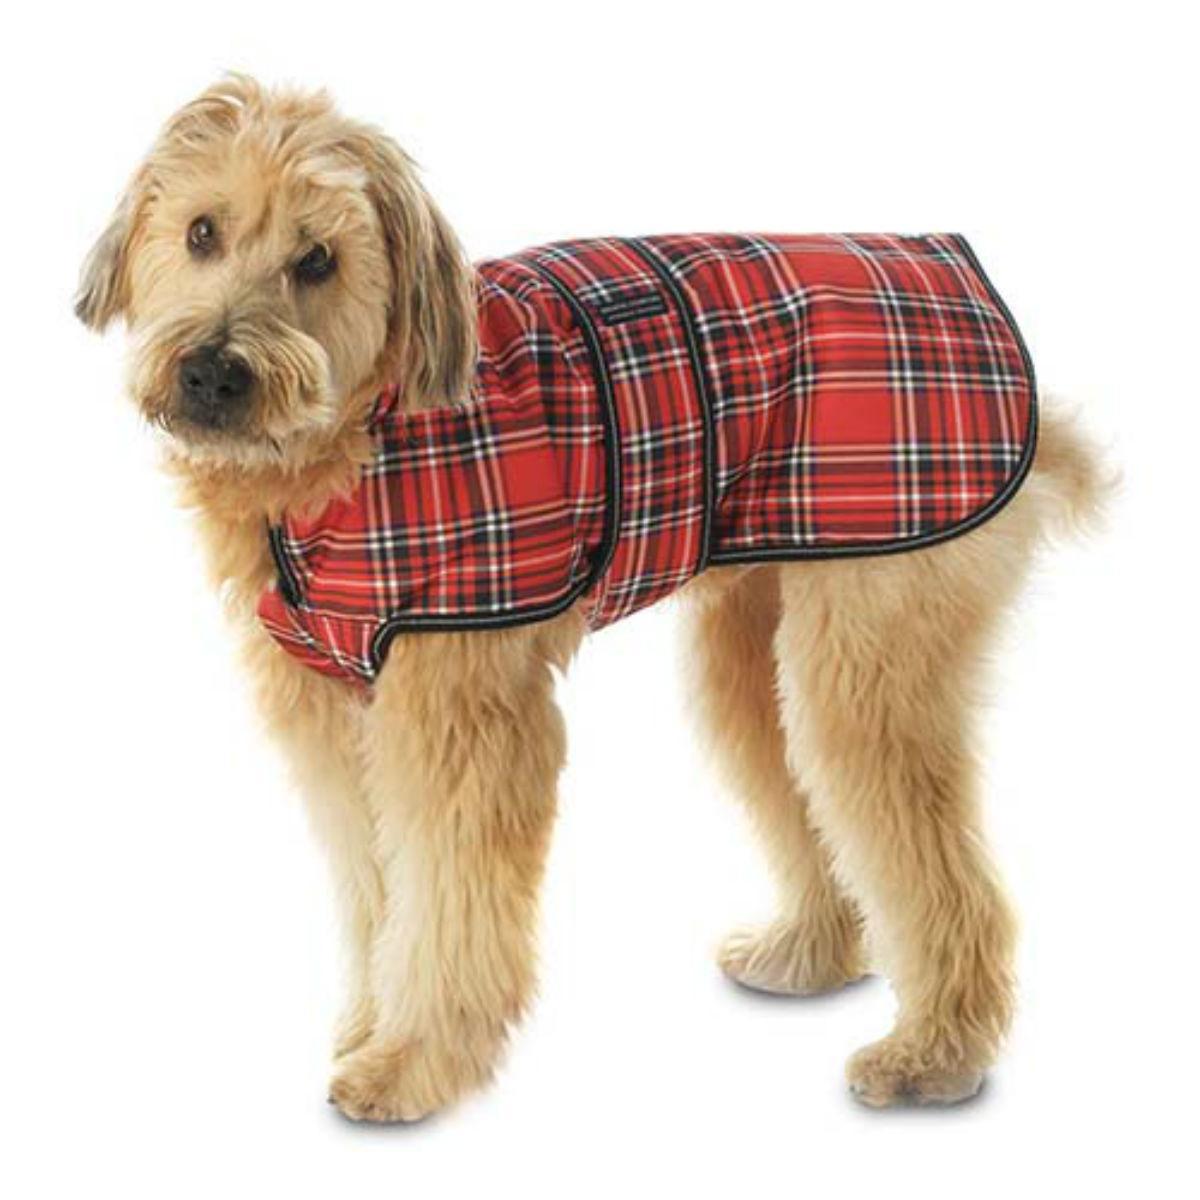 Kodiak Dog Coat - Red Plaid